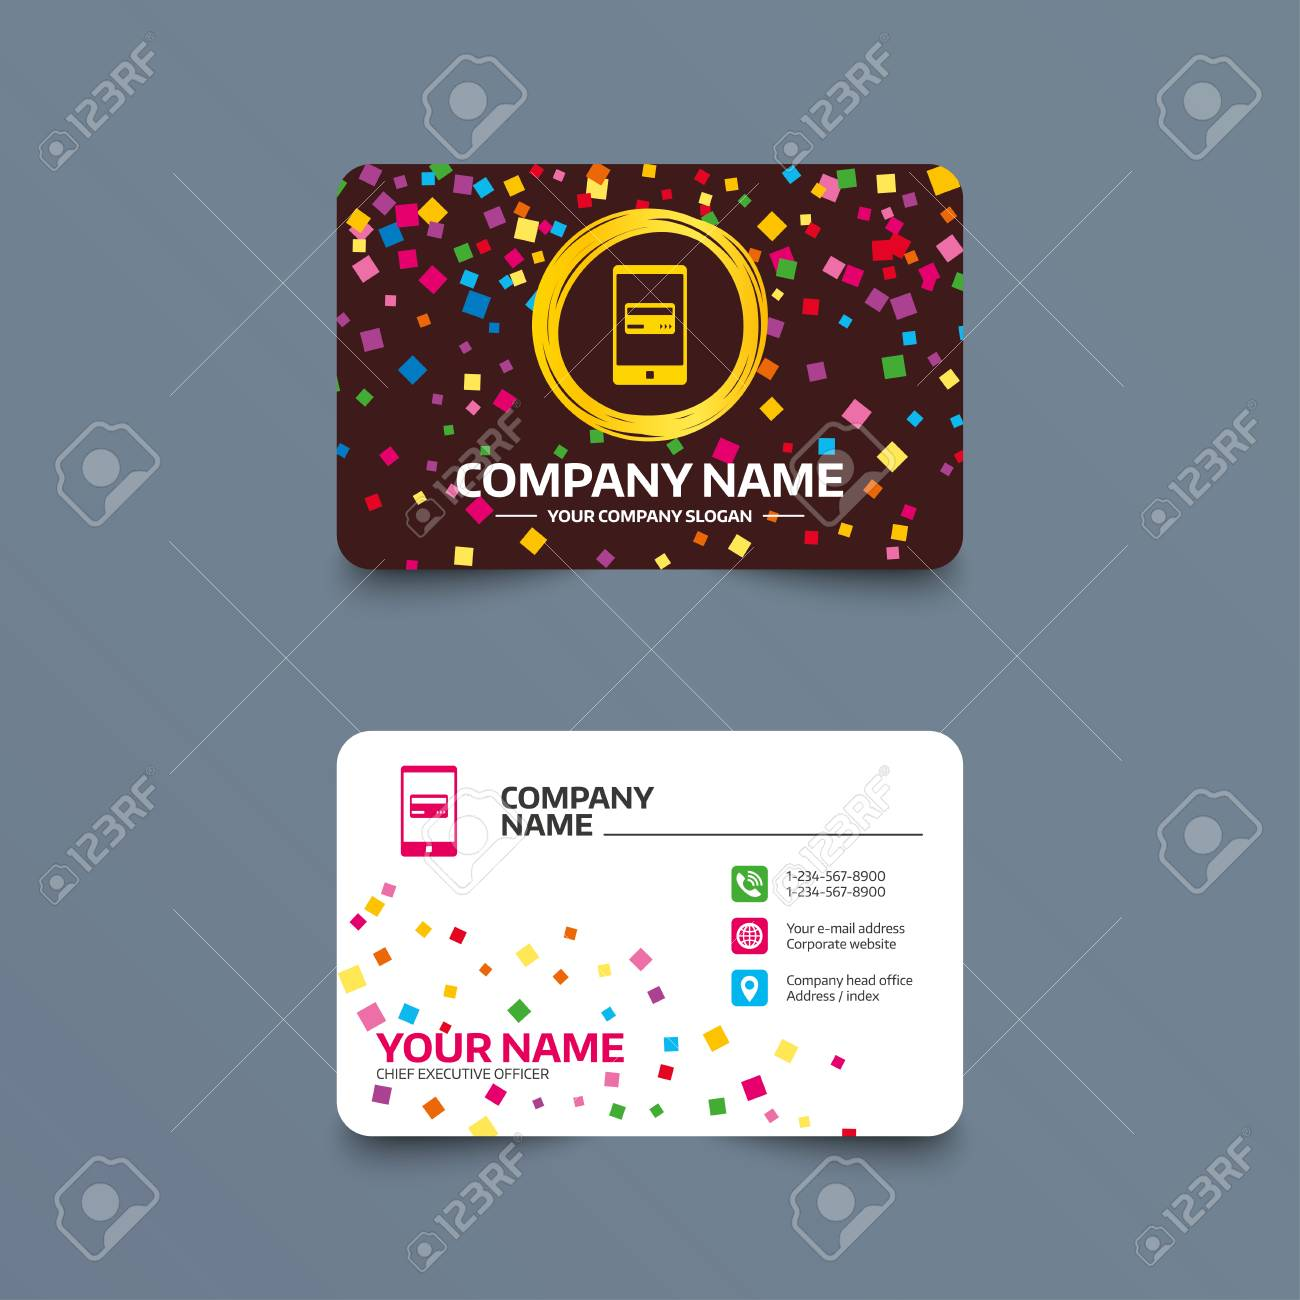 Business Card Template With Confetti Pieces. Mobile Payments ...